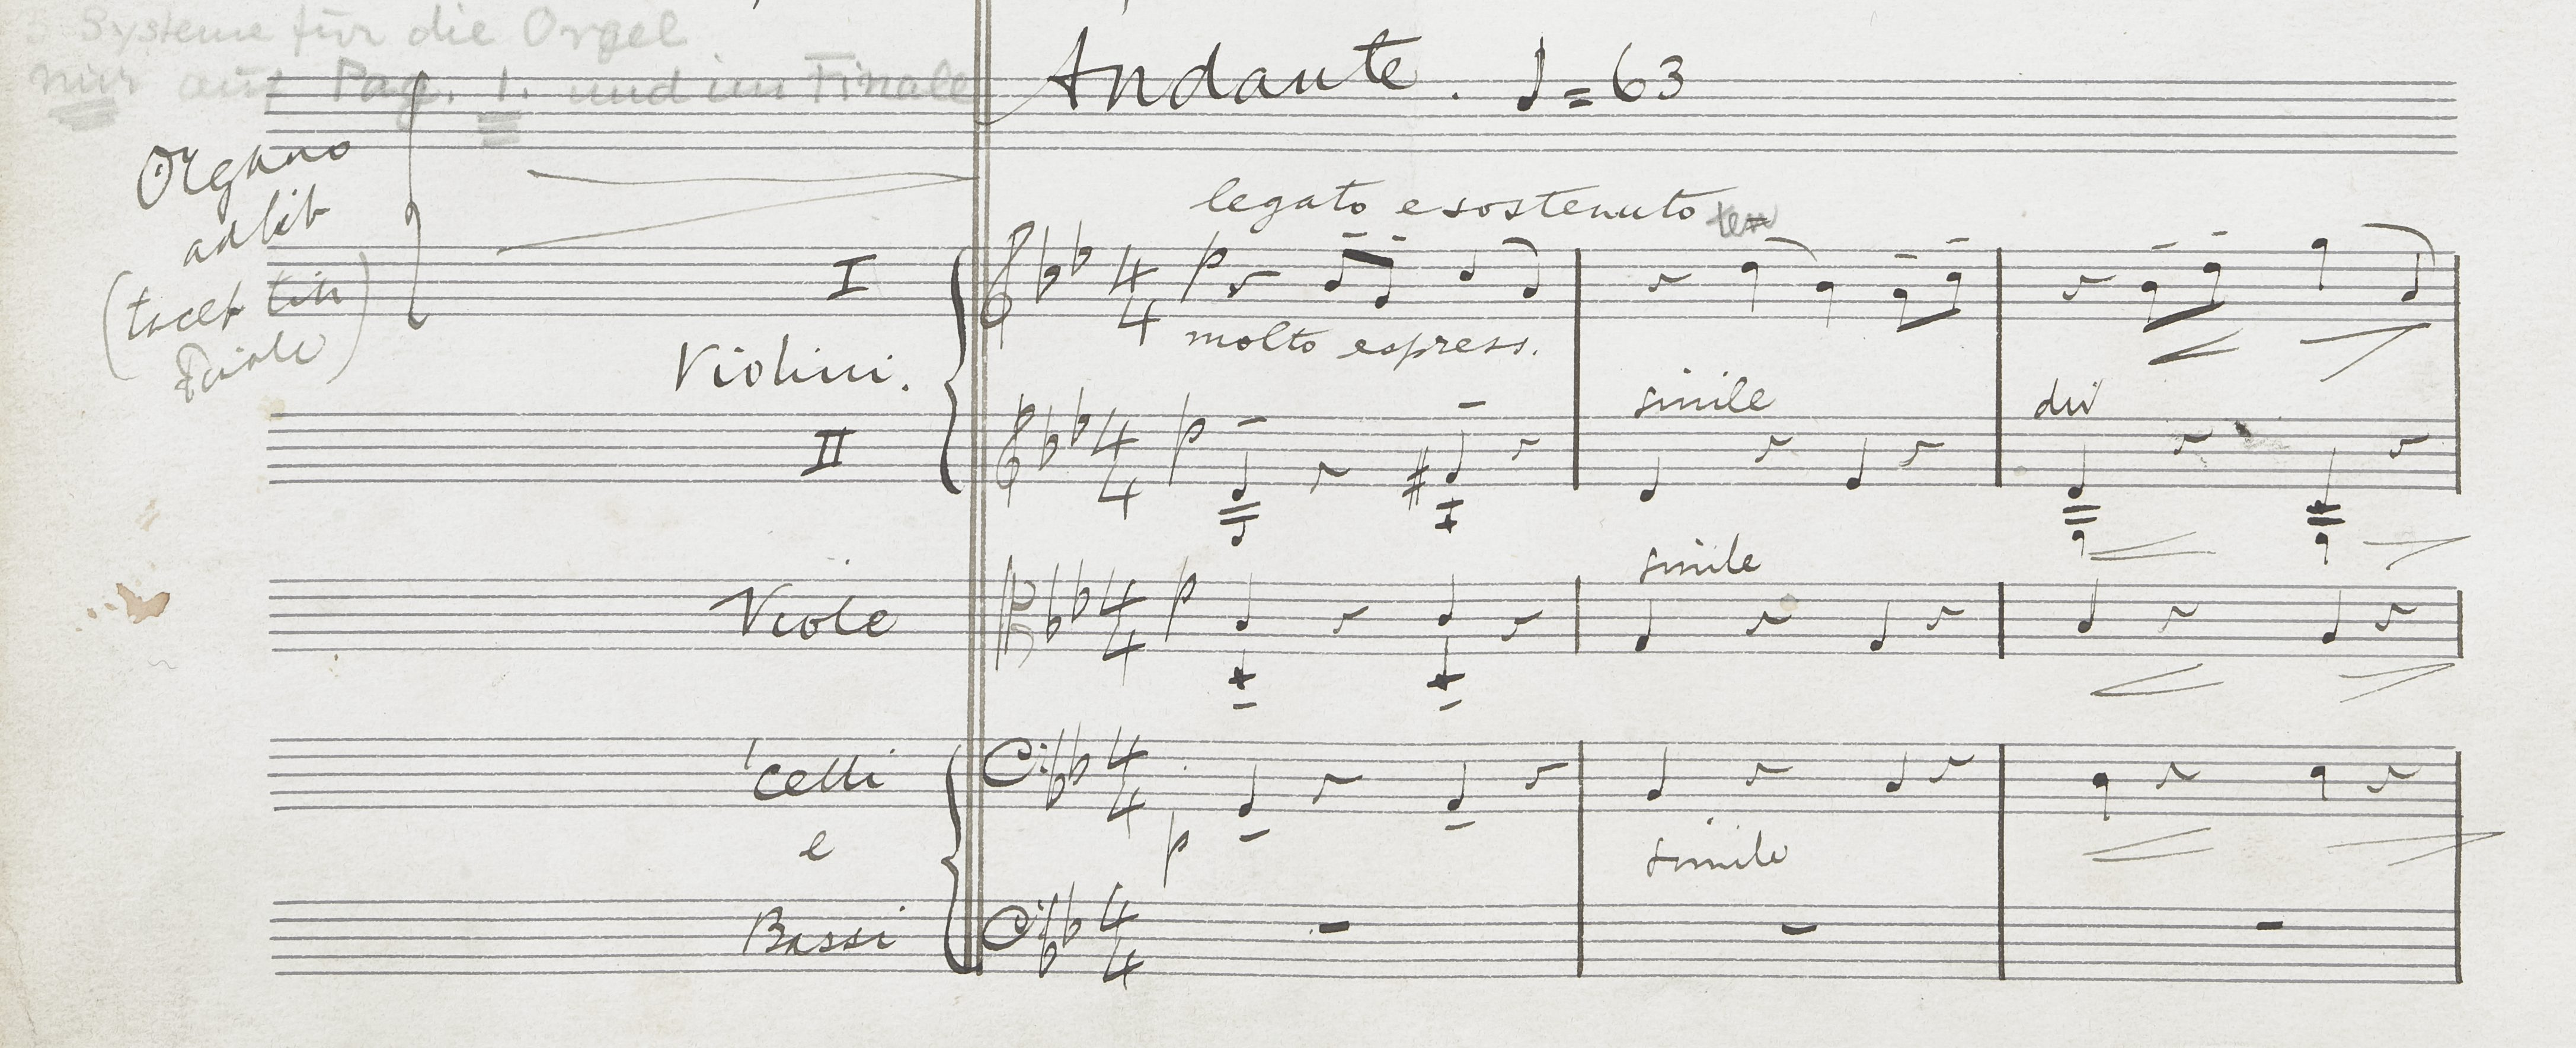 A handwritten Elgar score, with parts for violin, viola, cello and bass